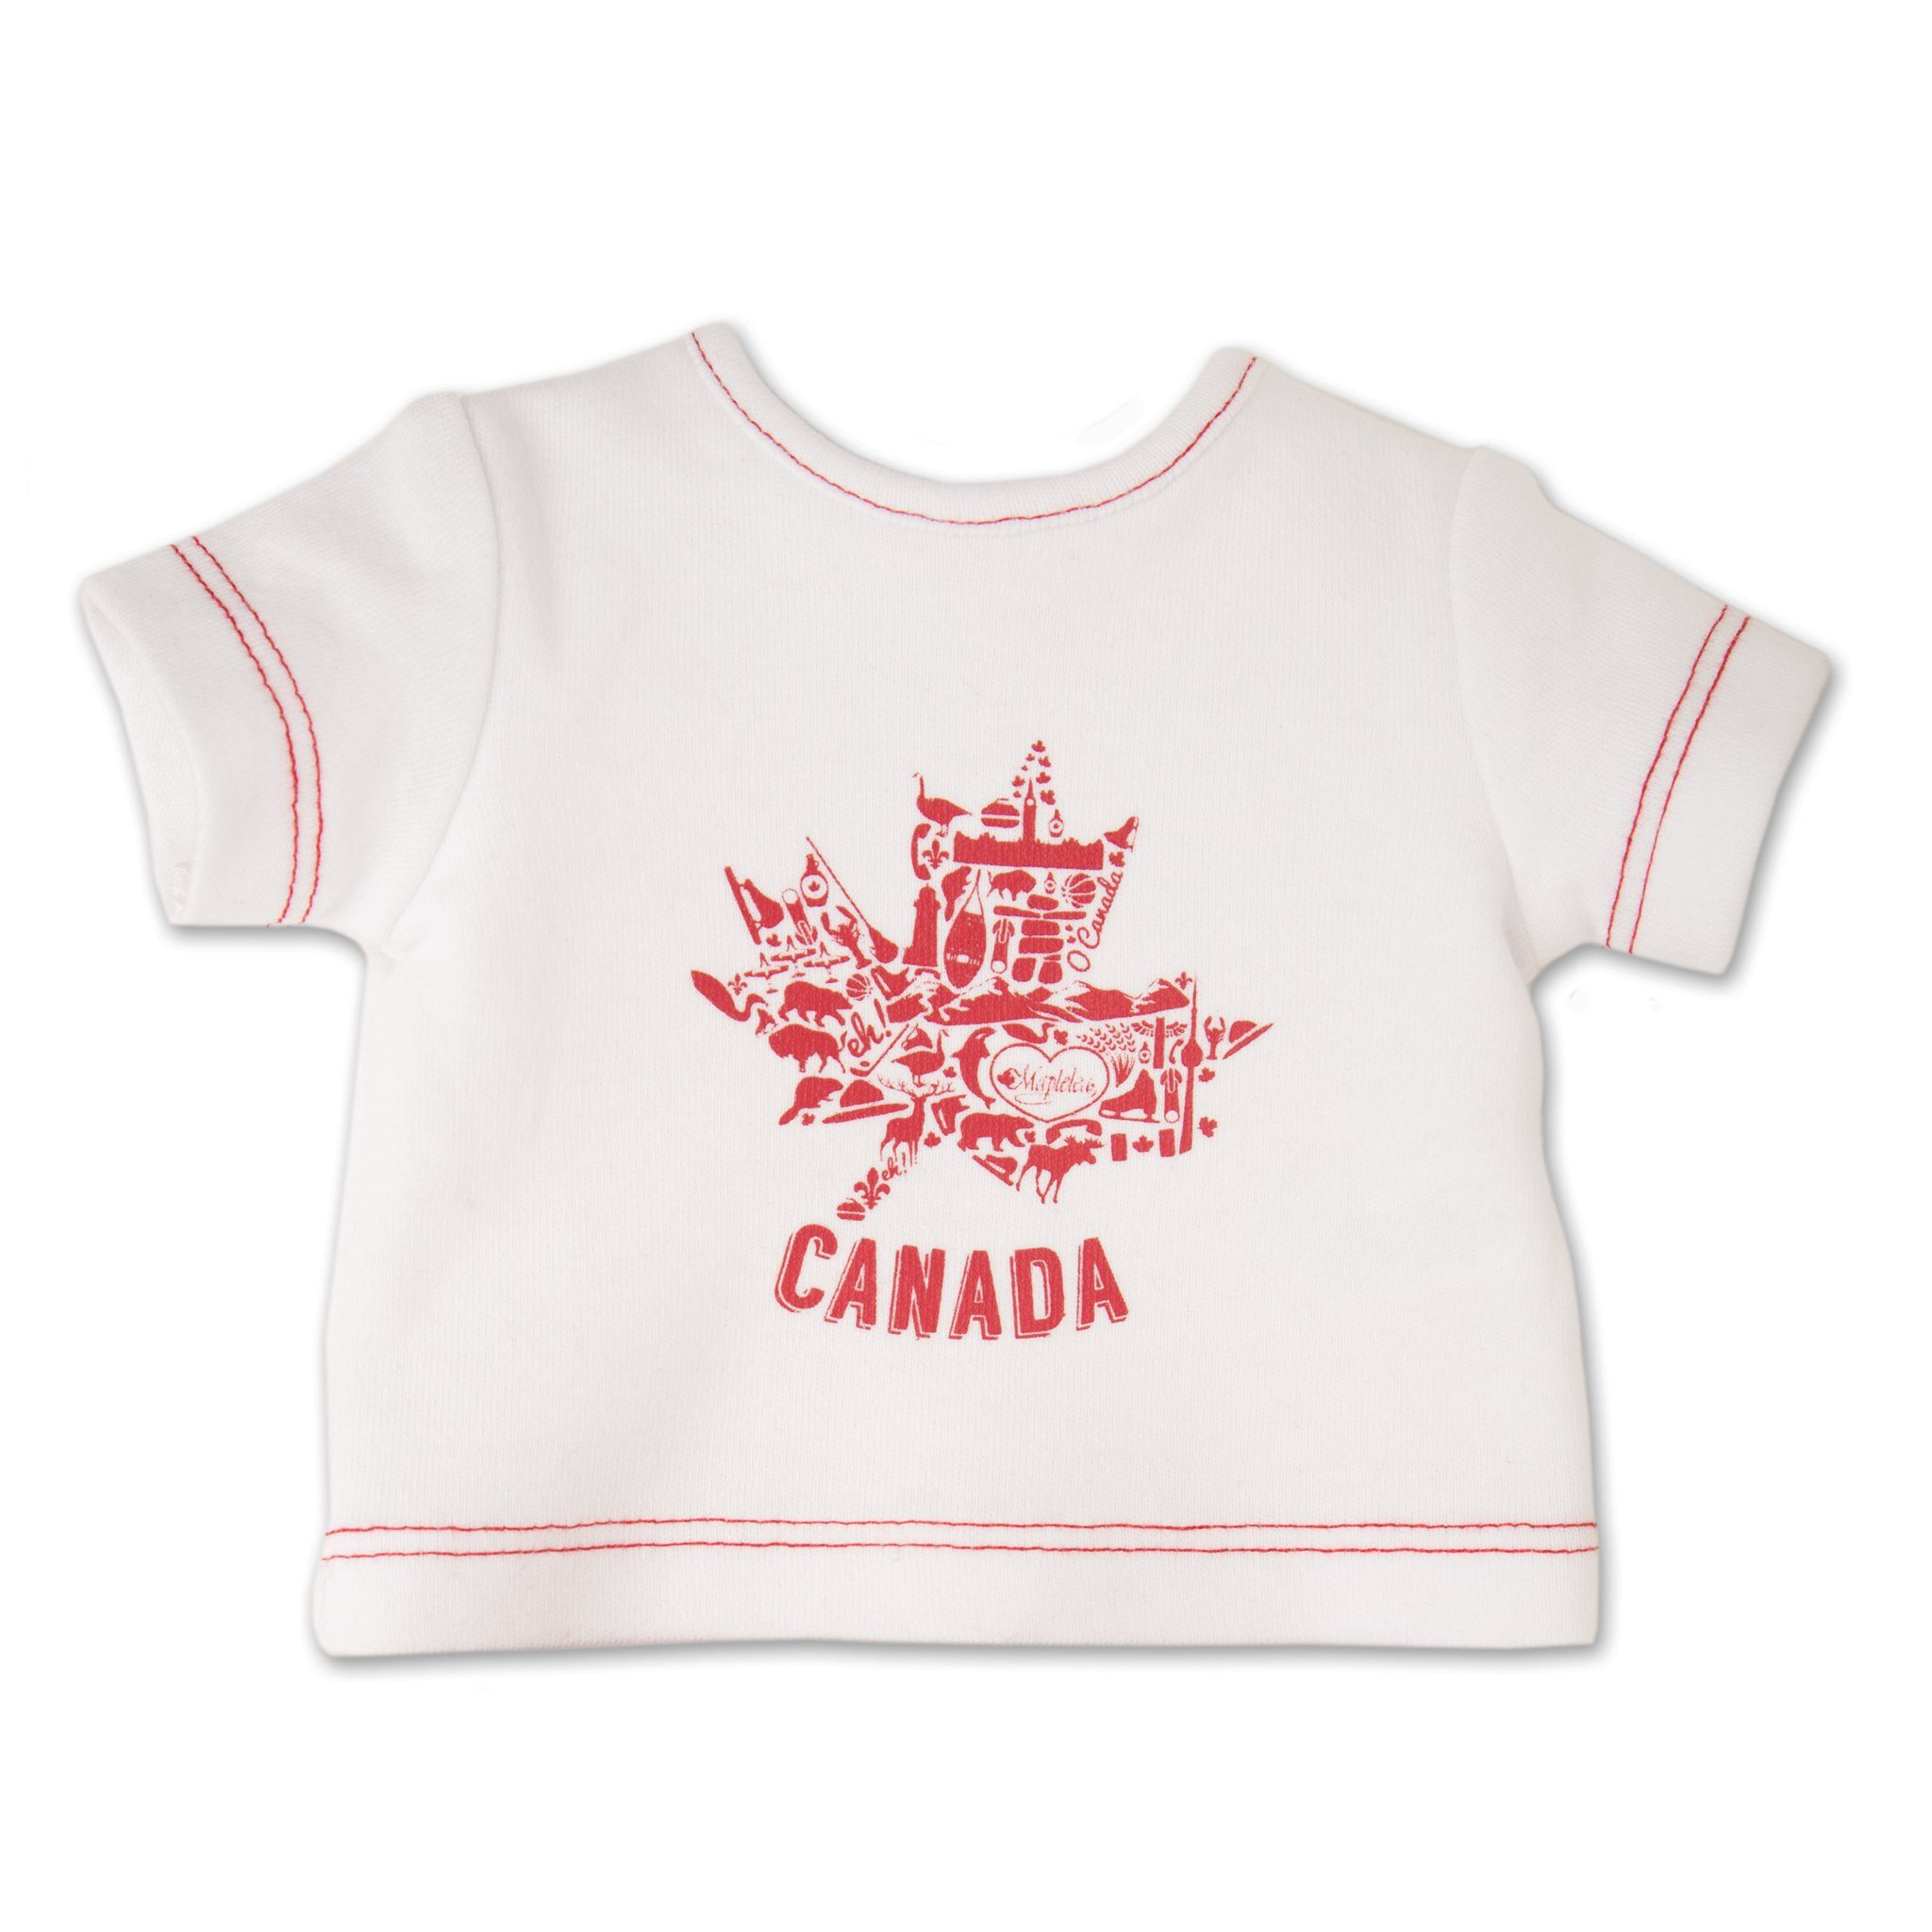 Canada Day Outfit graphic tee-shirt fits all 18 inch dolls.